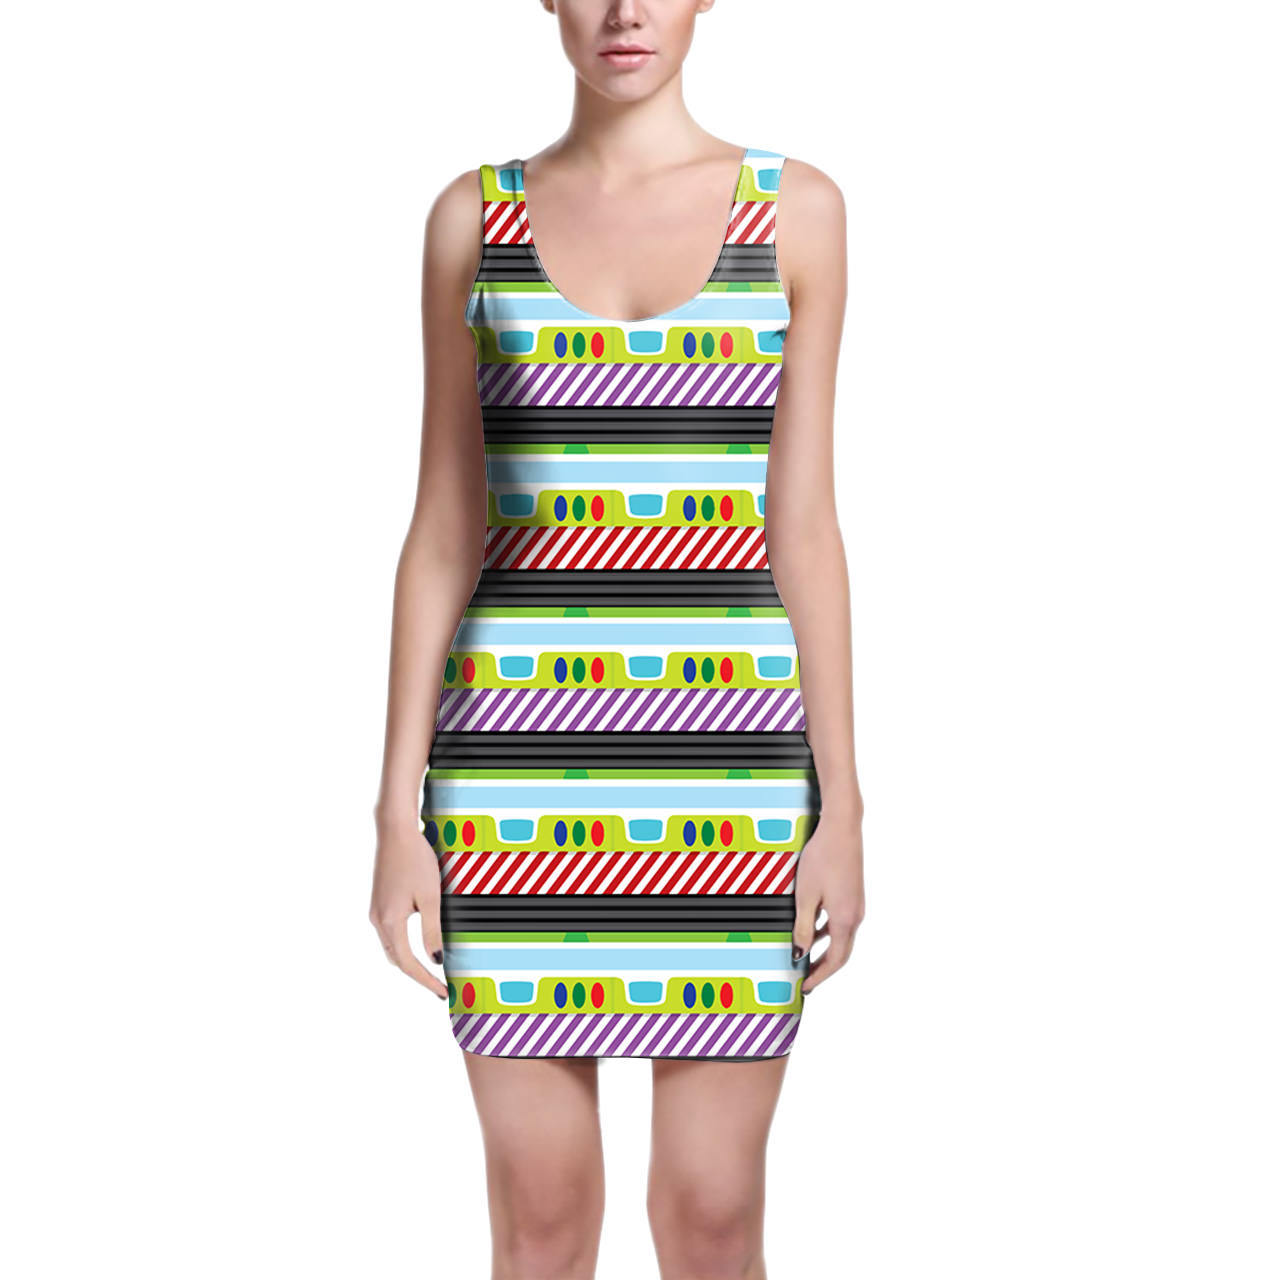 29 bodycondress front